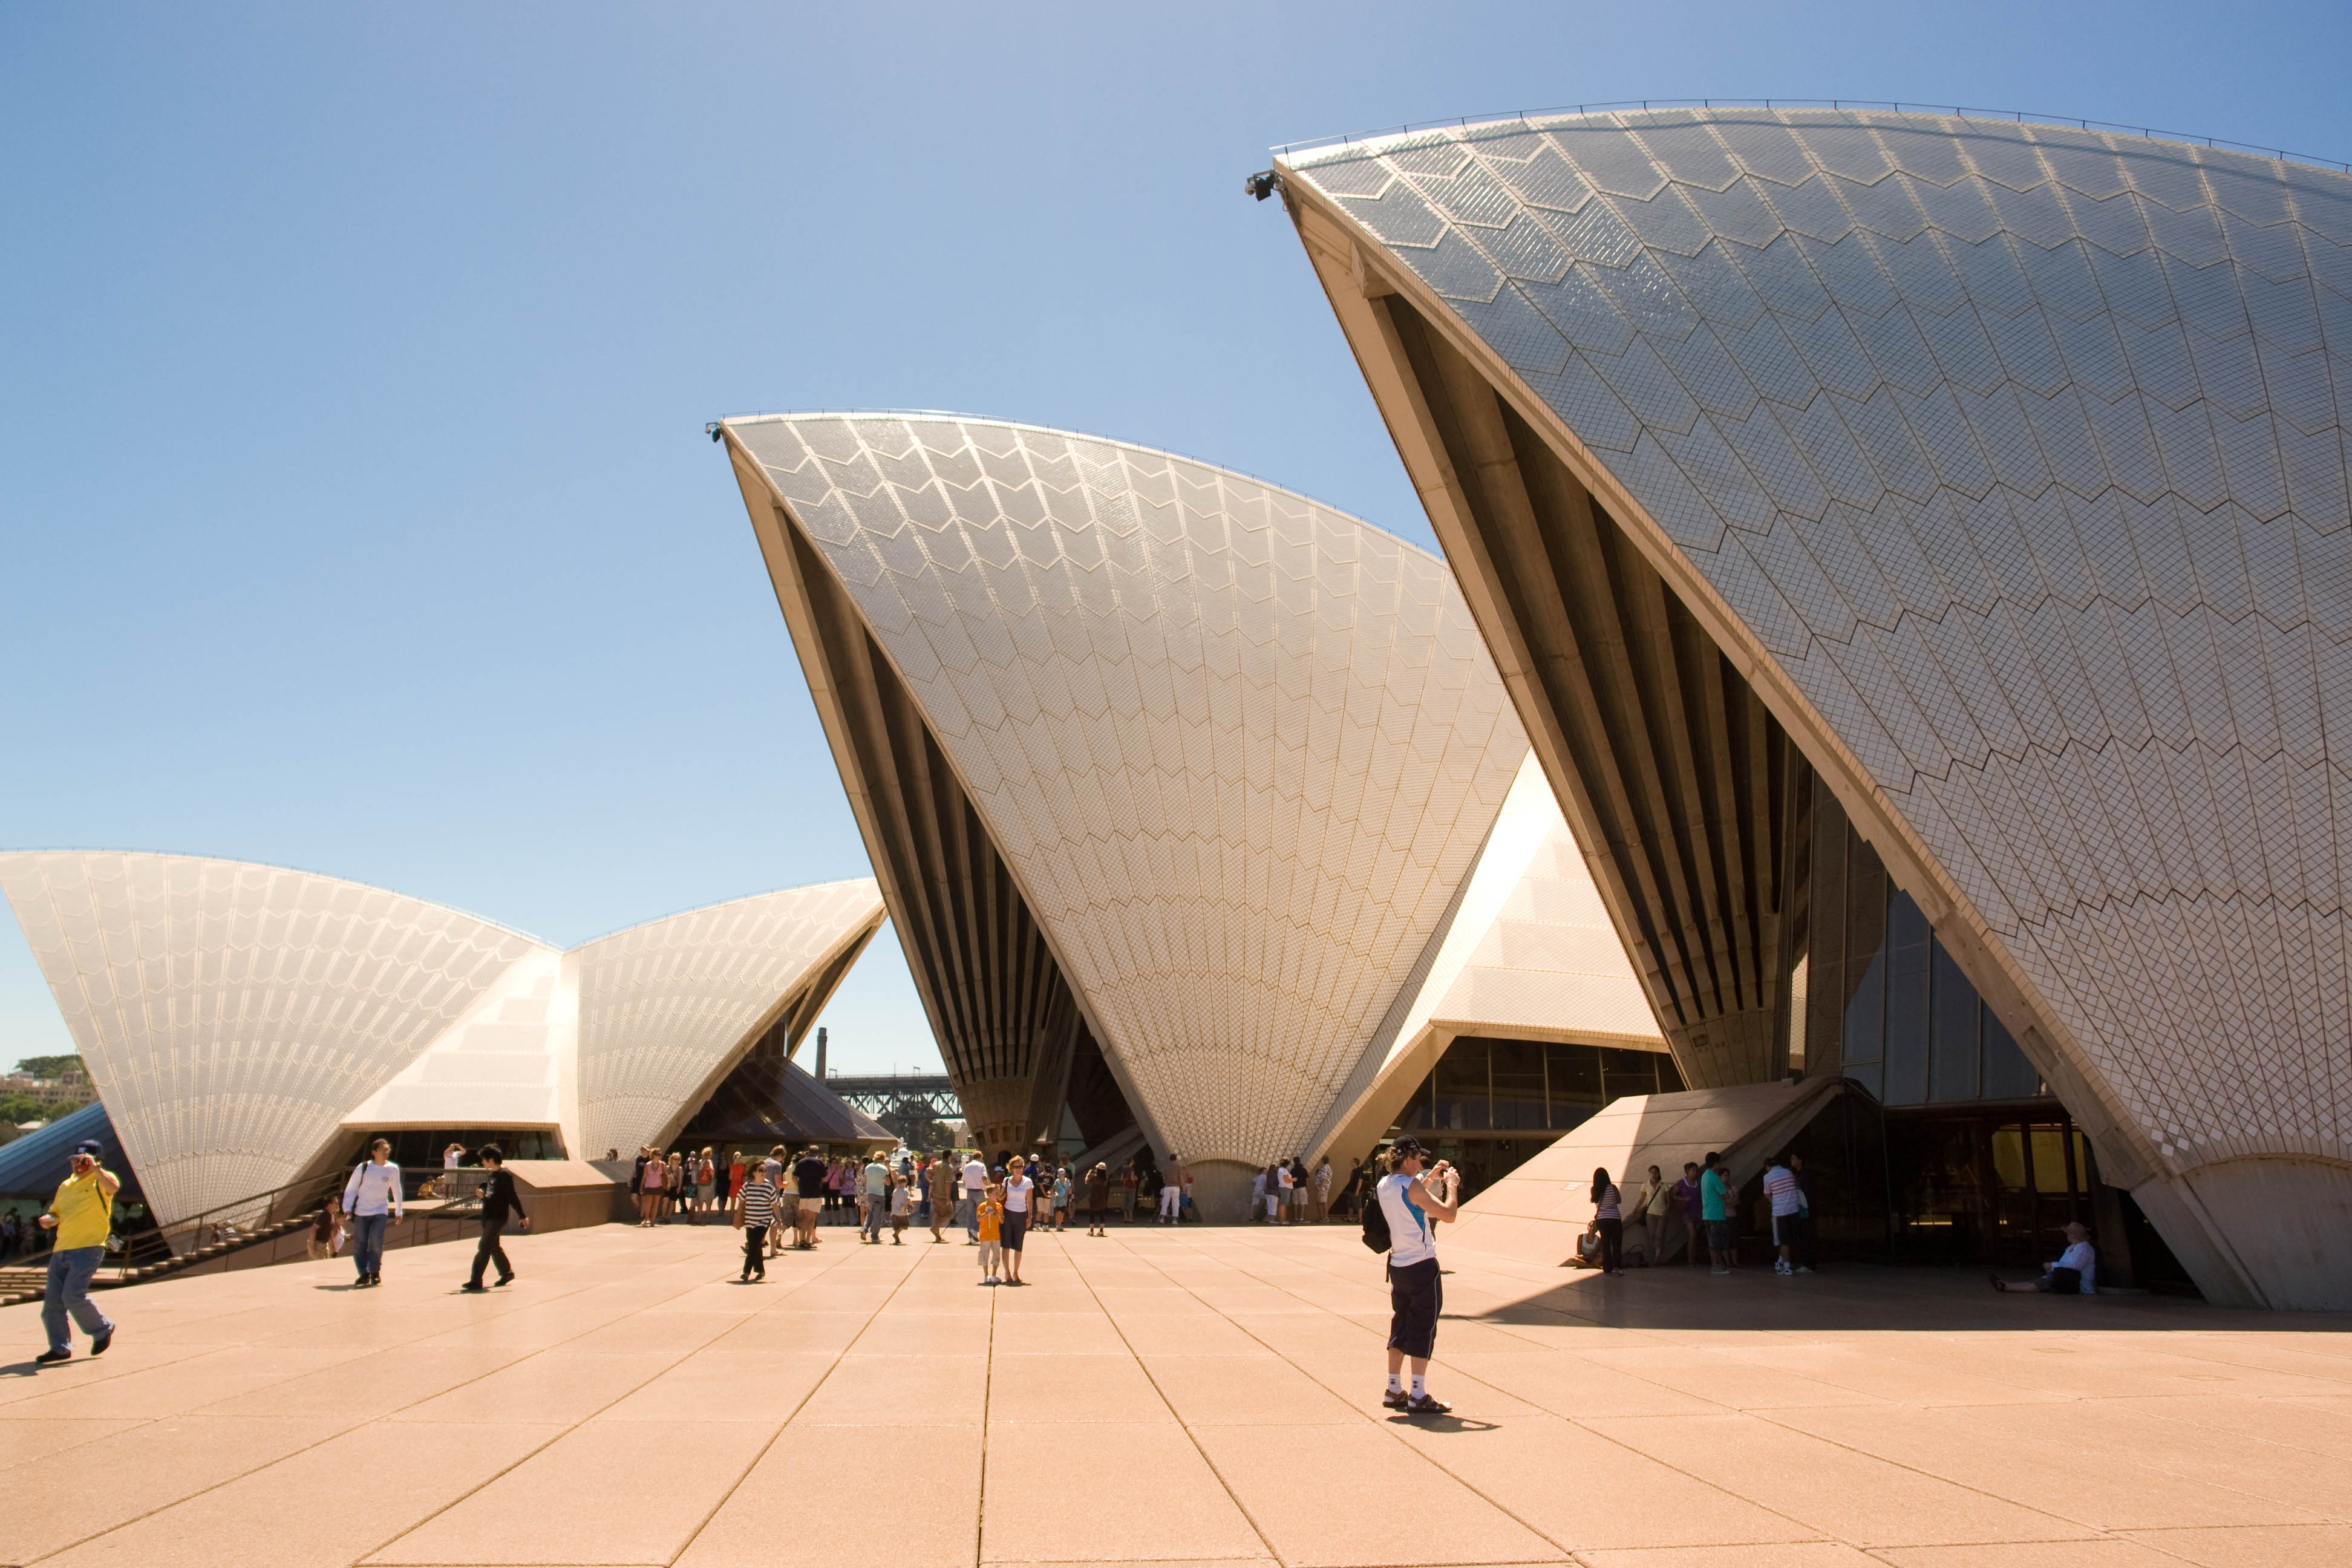 national geographic engineering connections sydney opera house - photo#22